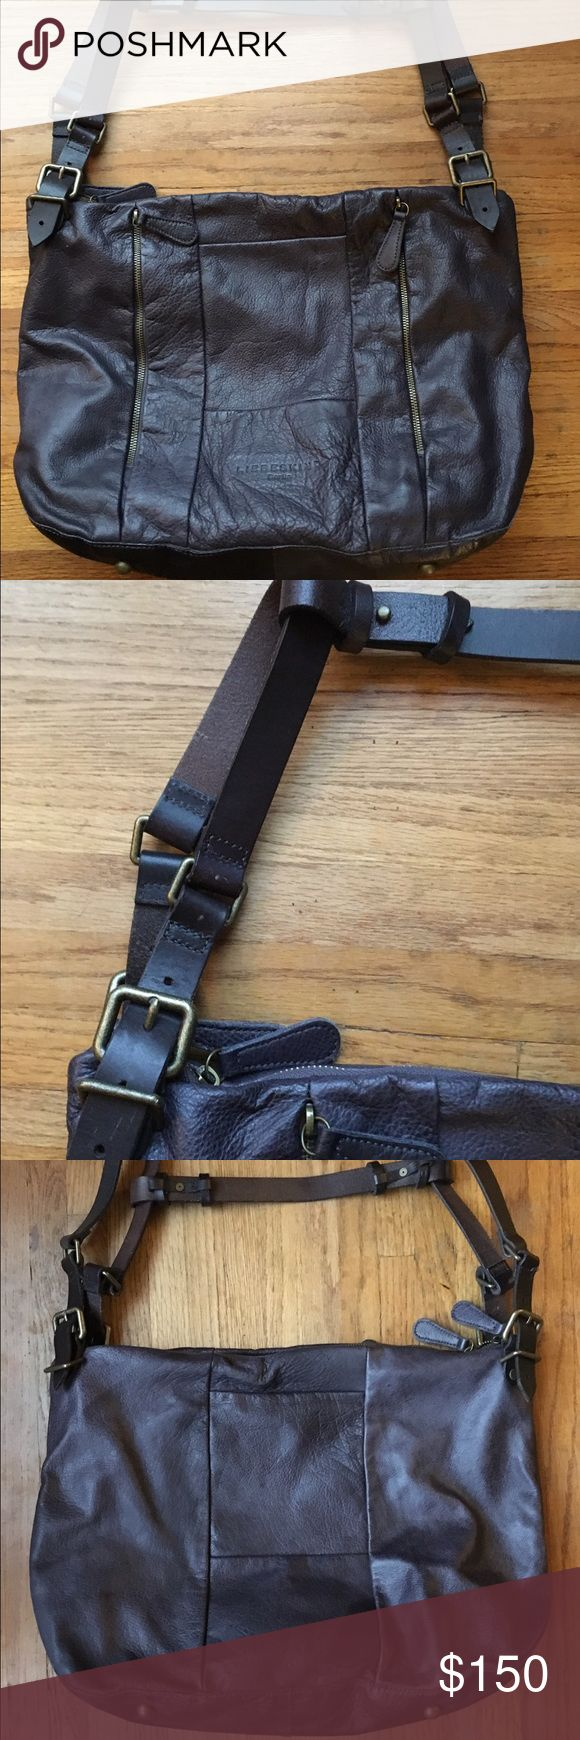 Selling this Liebeskind Berlin Leather Purse on Poshmark! My username is: a2ndhandhome. #shopmycloset #poshmark #fashion #shopping #style #forsale #Liebeskind #Handbags